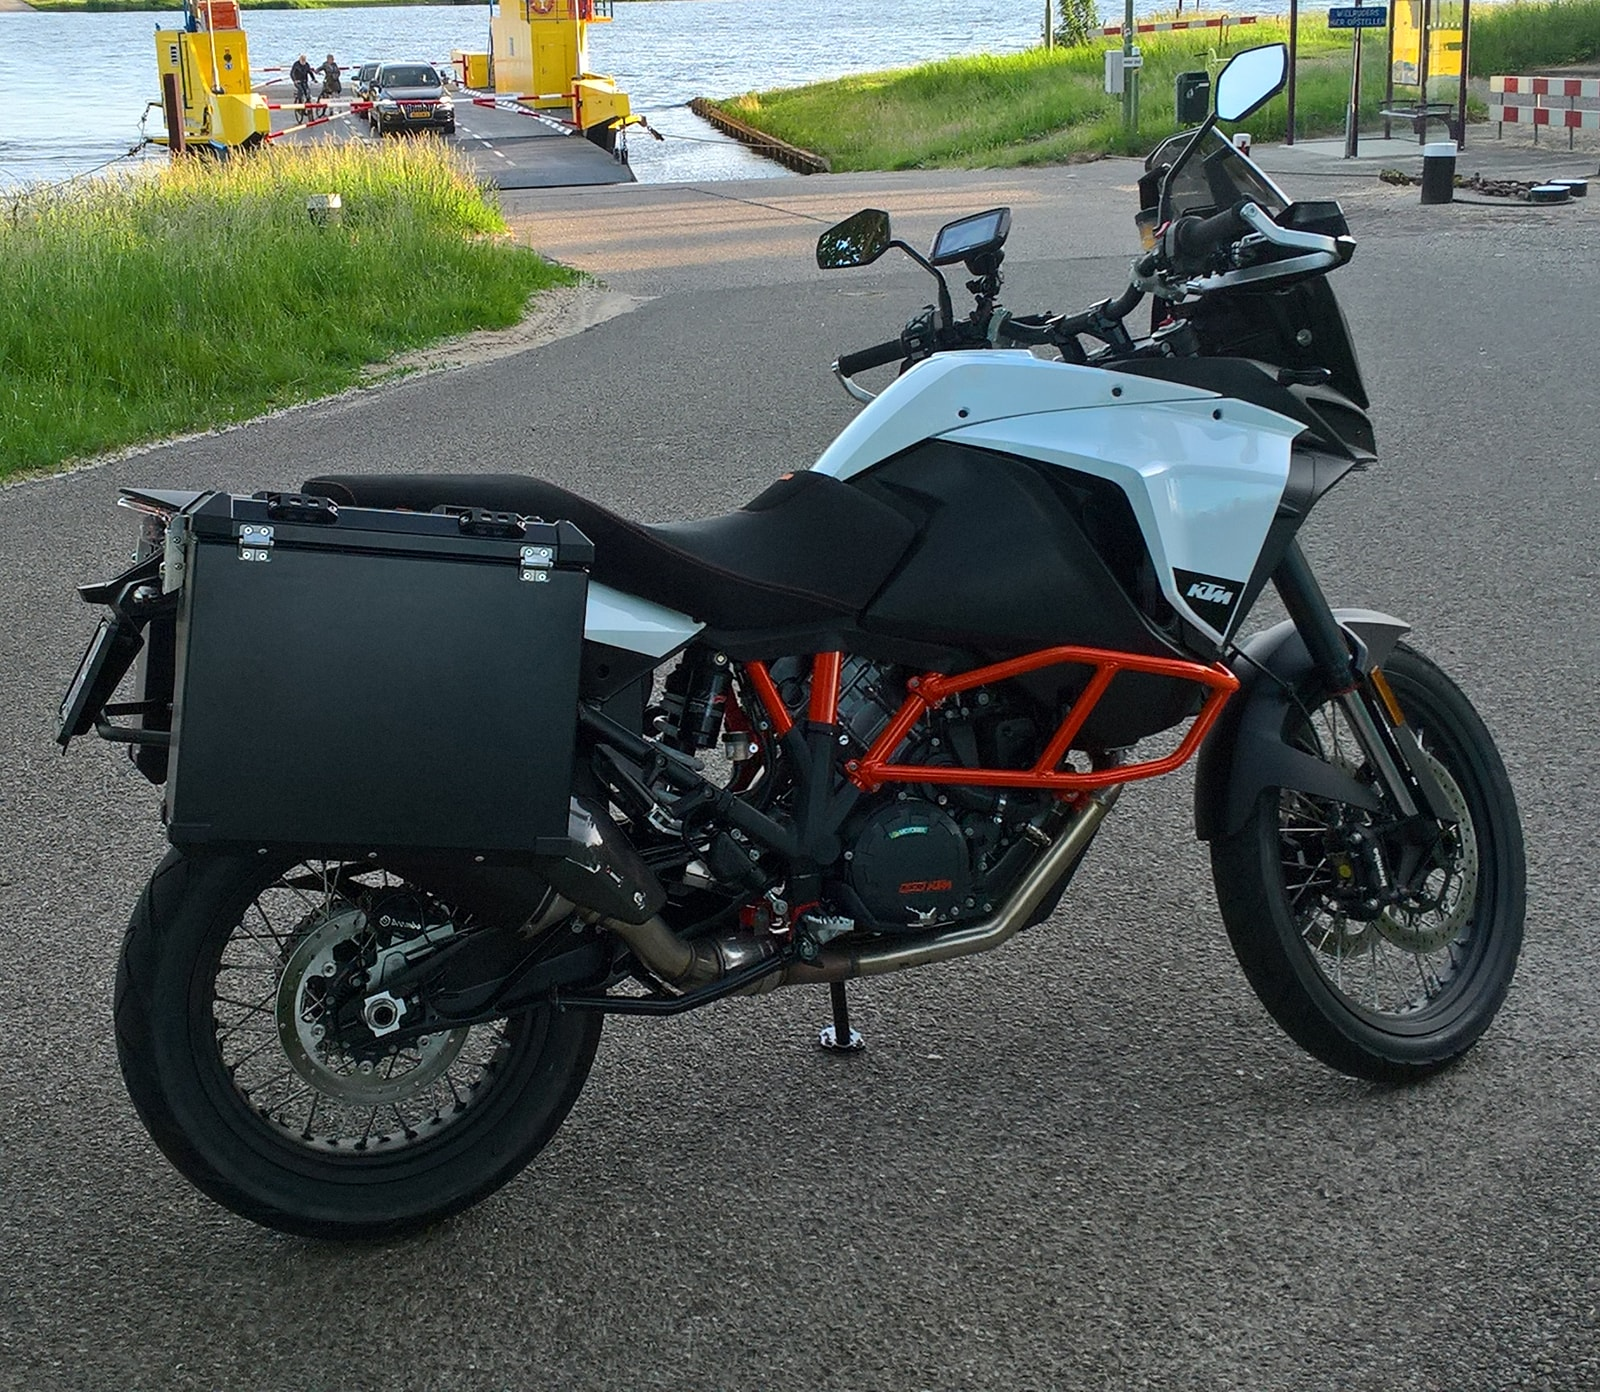 Defender panniers system up to 2020